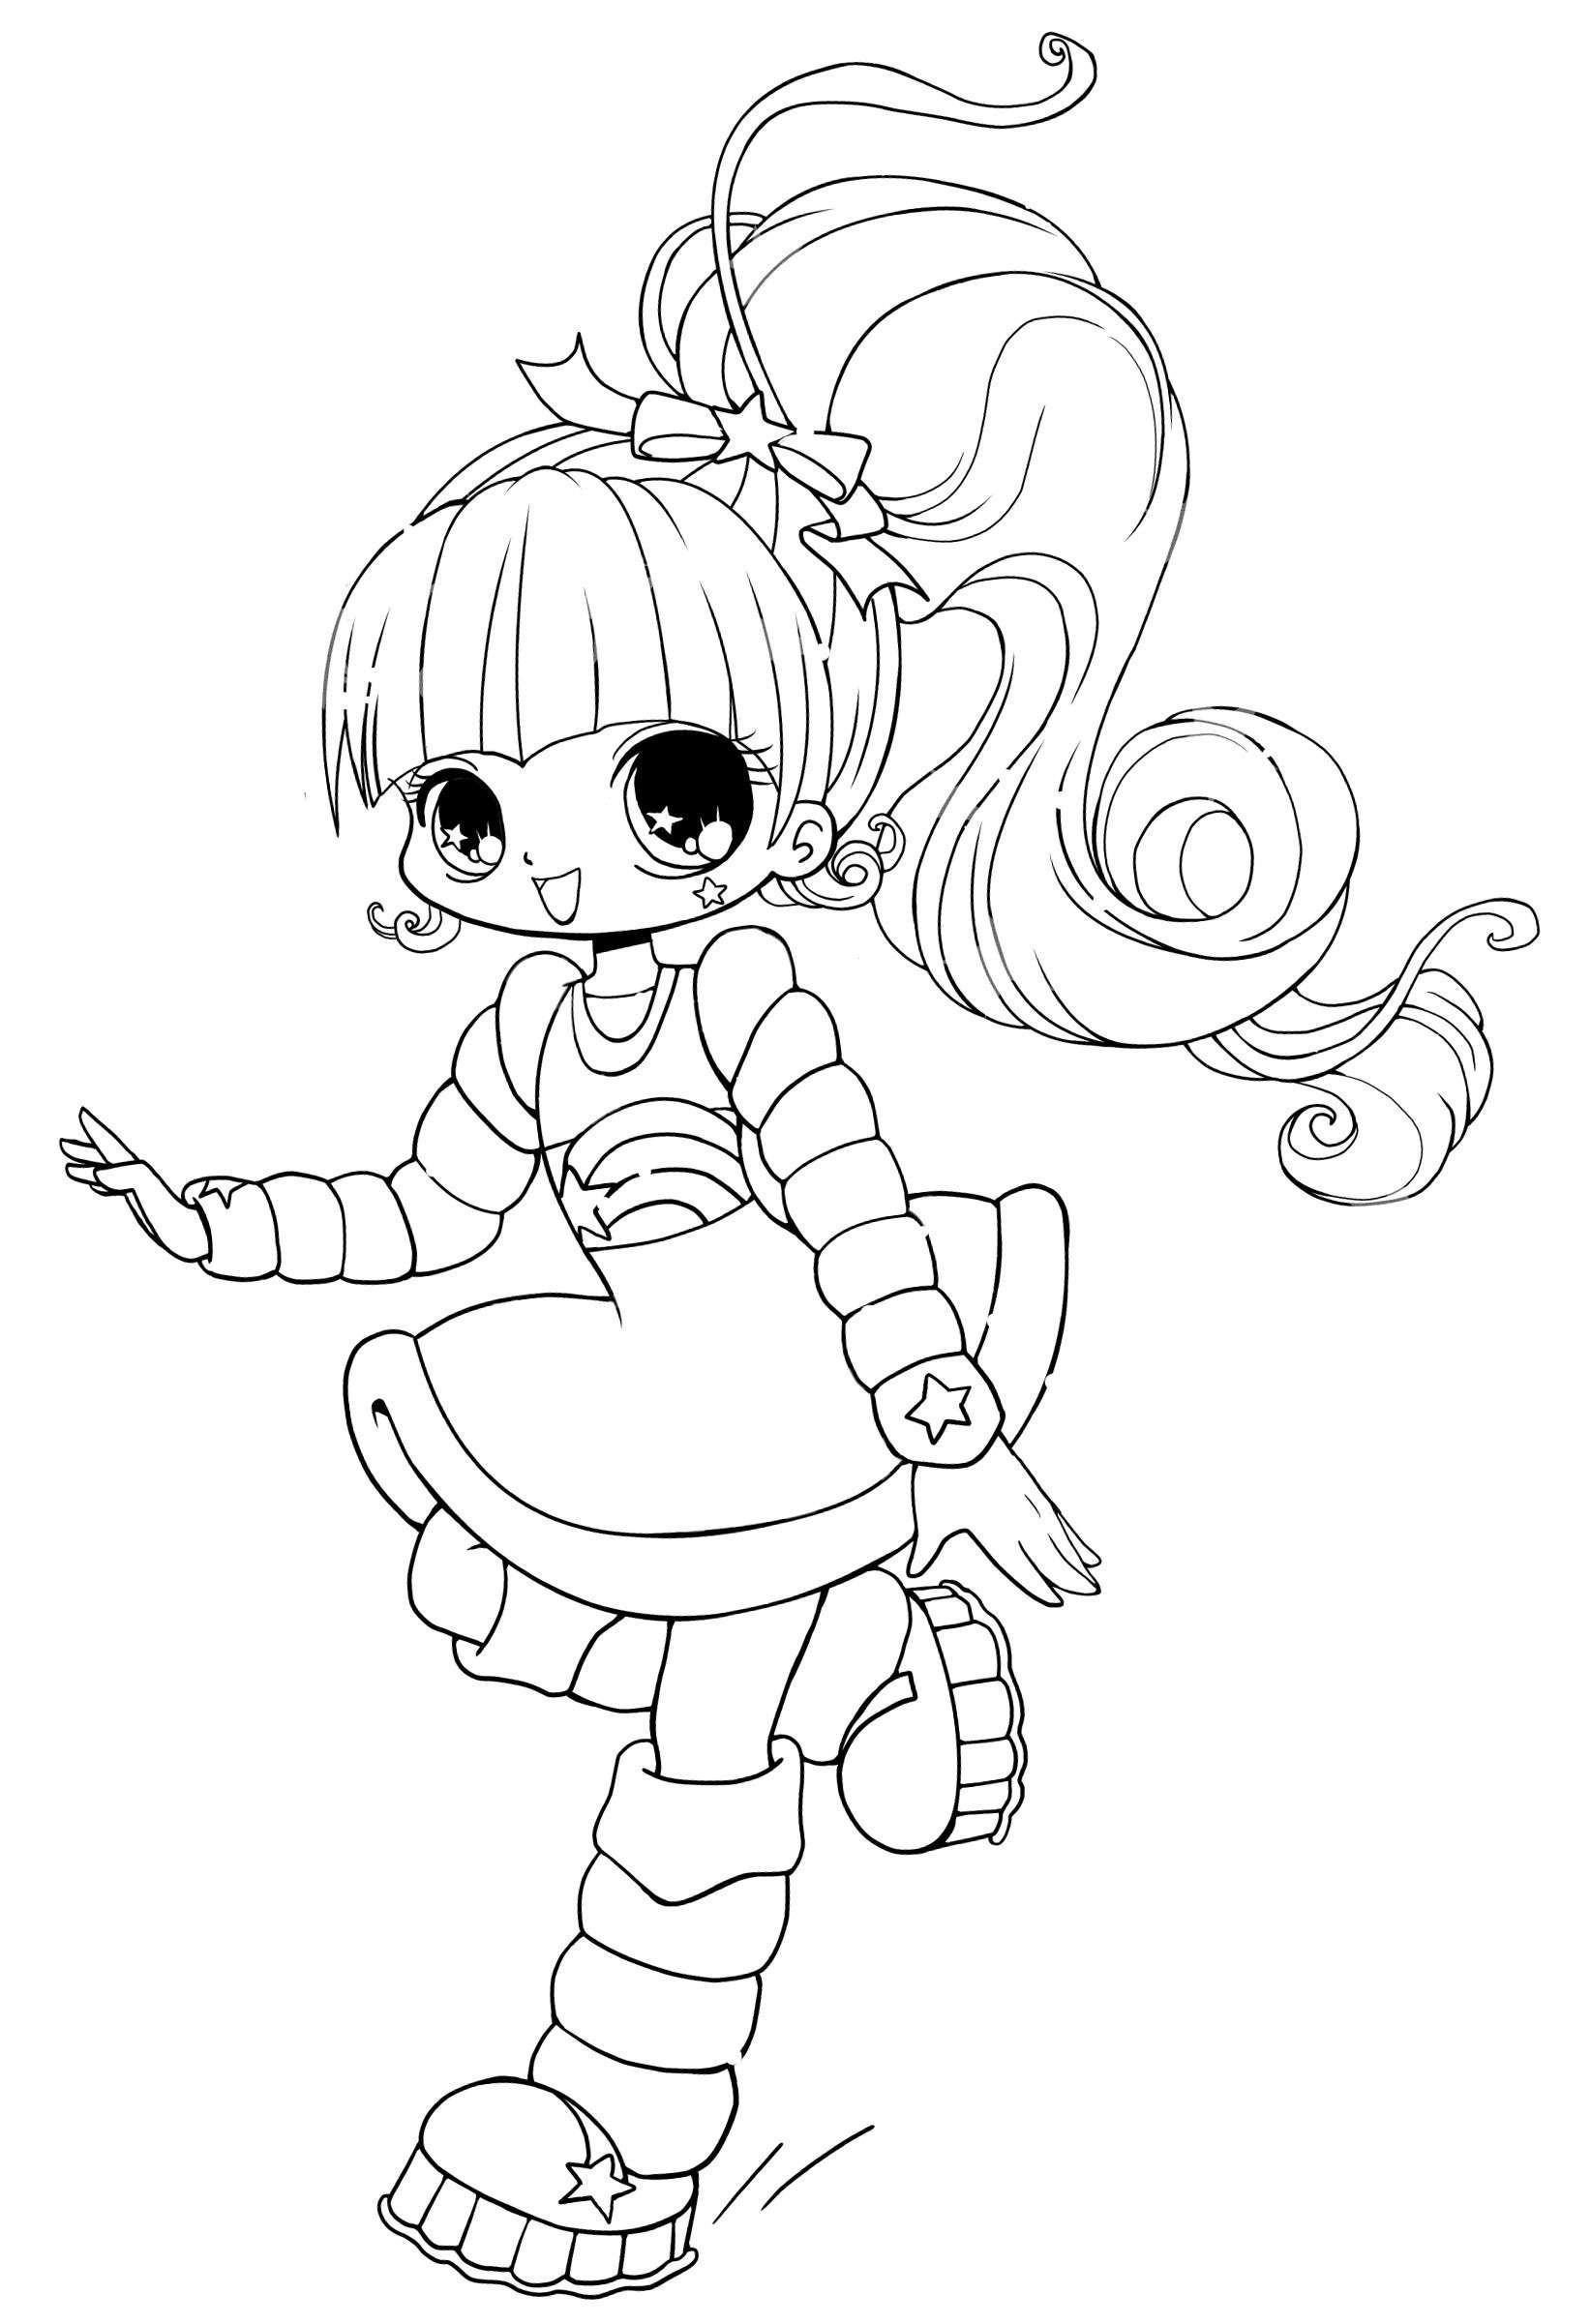 kawaii girl coloring pages fashion girl art in 2019 coloring pages for girls coloring pages girl kawaii